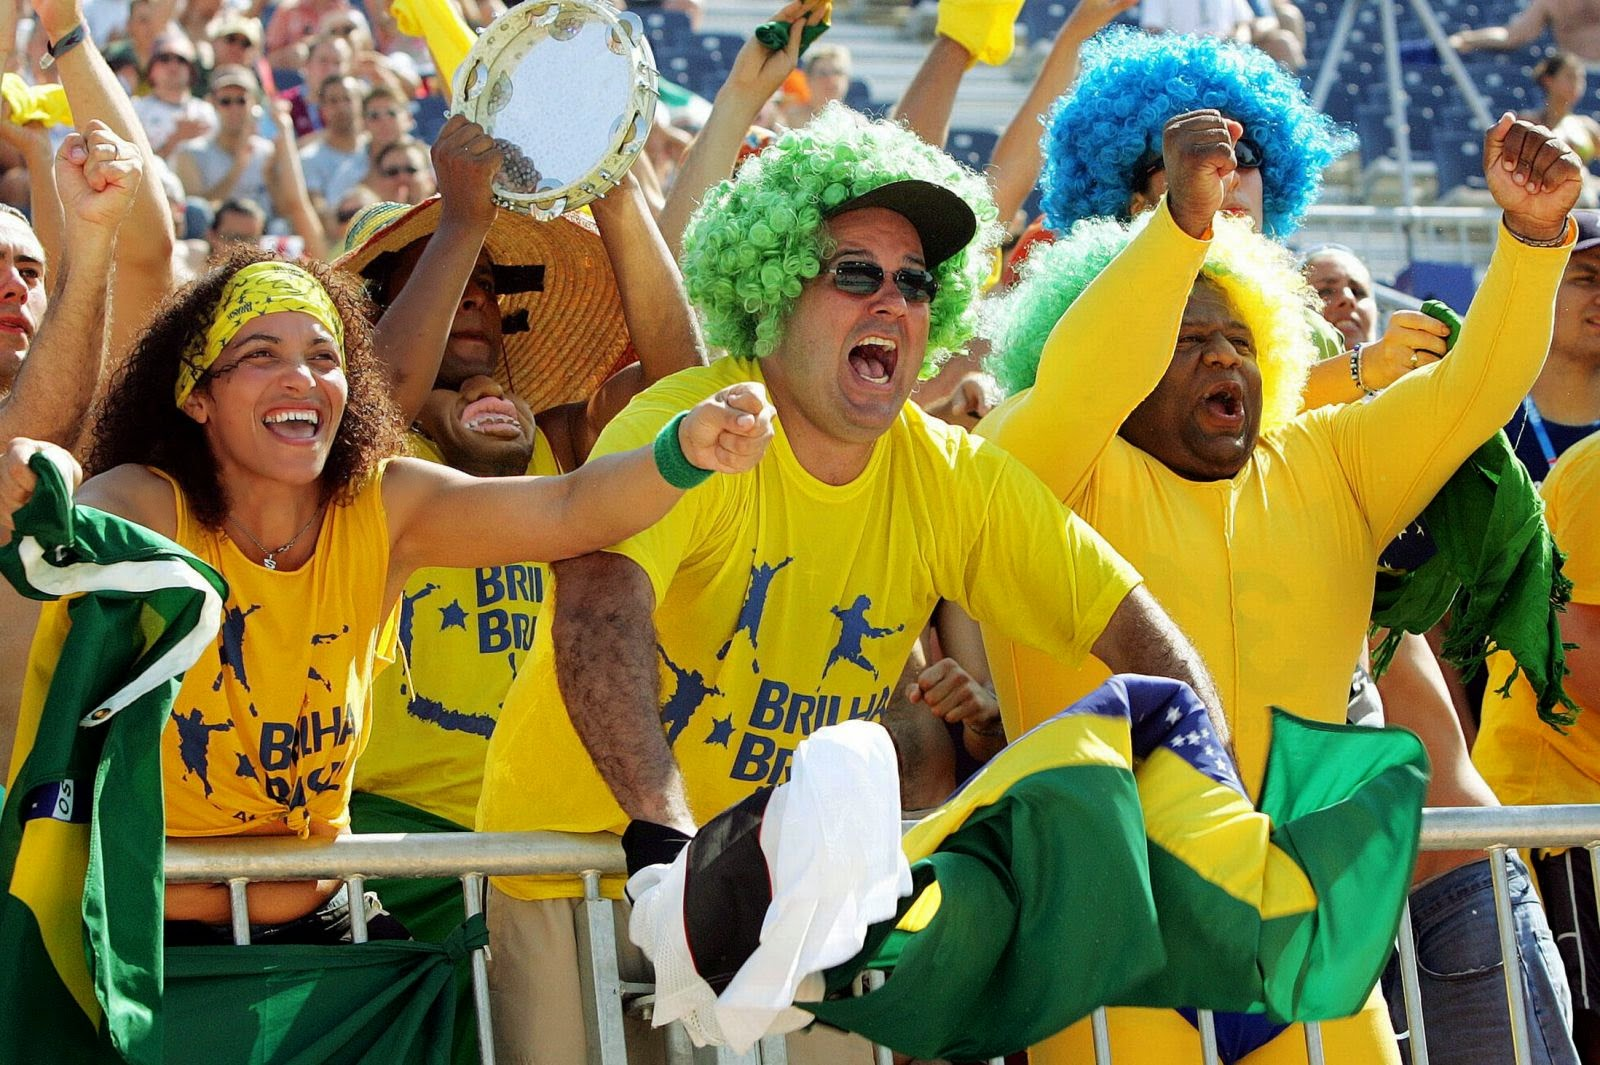 Places to watch 2014 World Cup: Klang Valley & KL